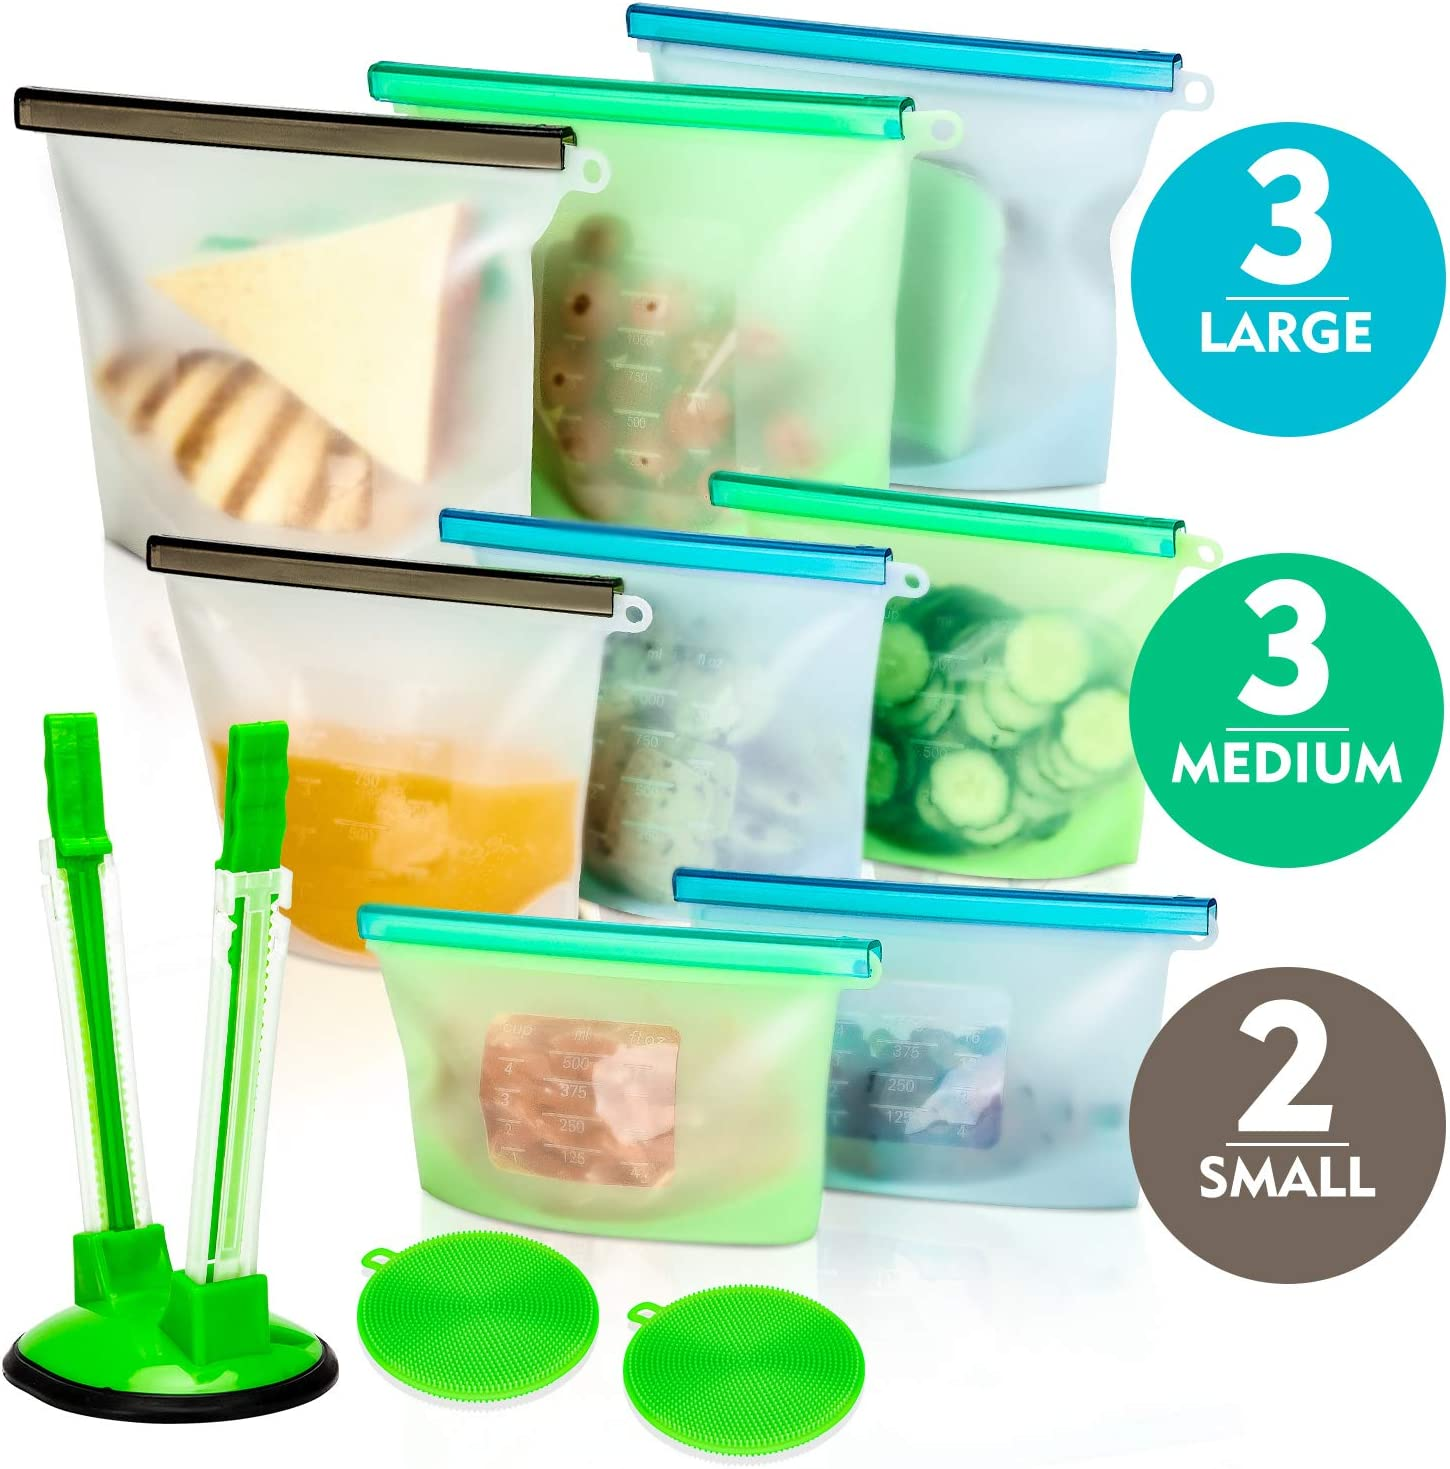 Silicone Bags Reusable Silicone Food Bag (8 Pack) Airtight Seal Food Preservation Bag/Food Grade/Versatile Silicone bags for Vegetable, Liquid, Snack, Meat, Sandwich